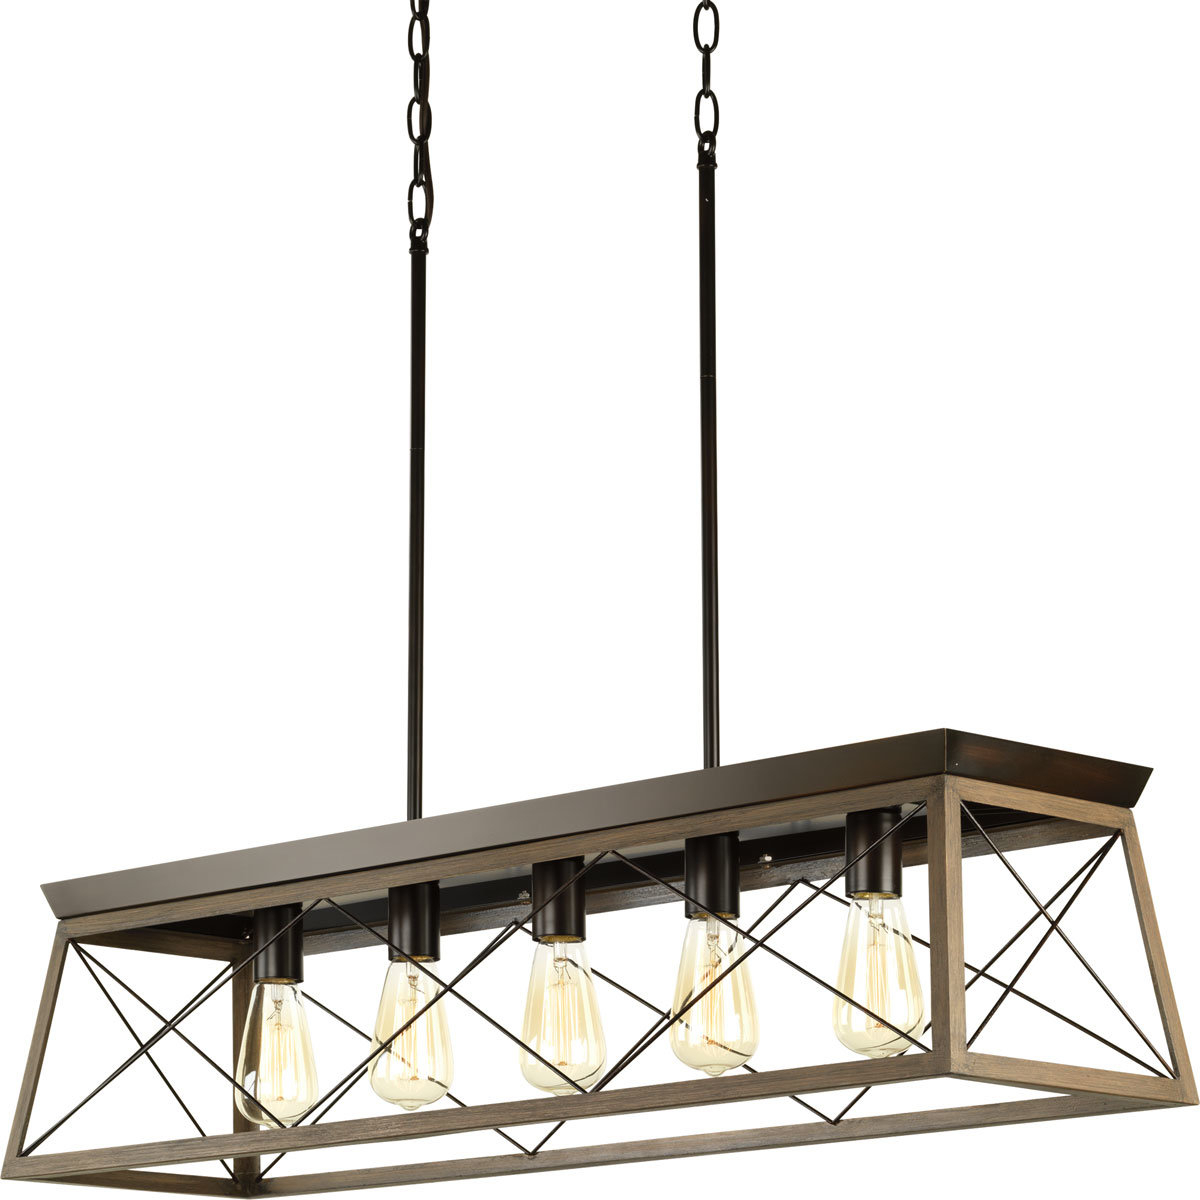 Newest Delon 5 Light Kitchen Island Linear Pendants Within Delon 5 Light Kitchen Island Linear Pendant (View 17 of 20)